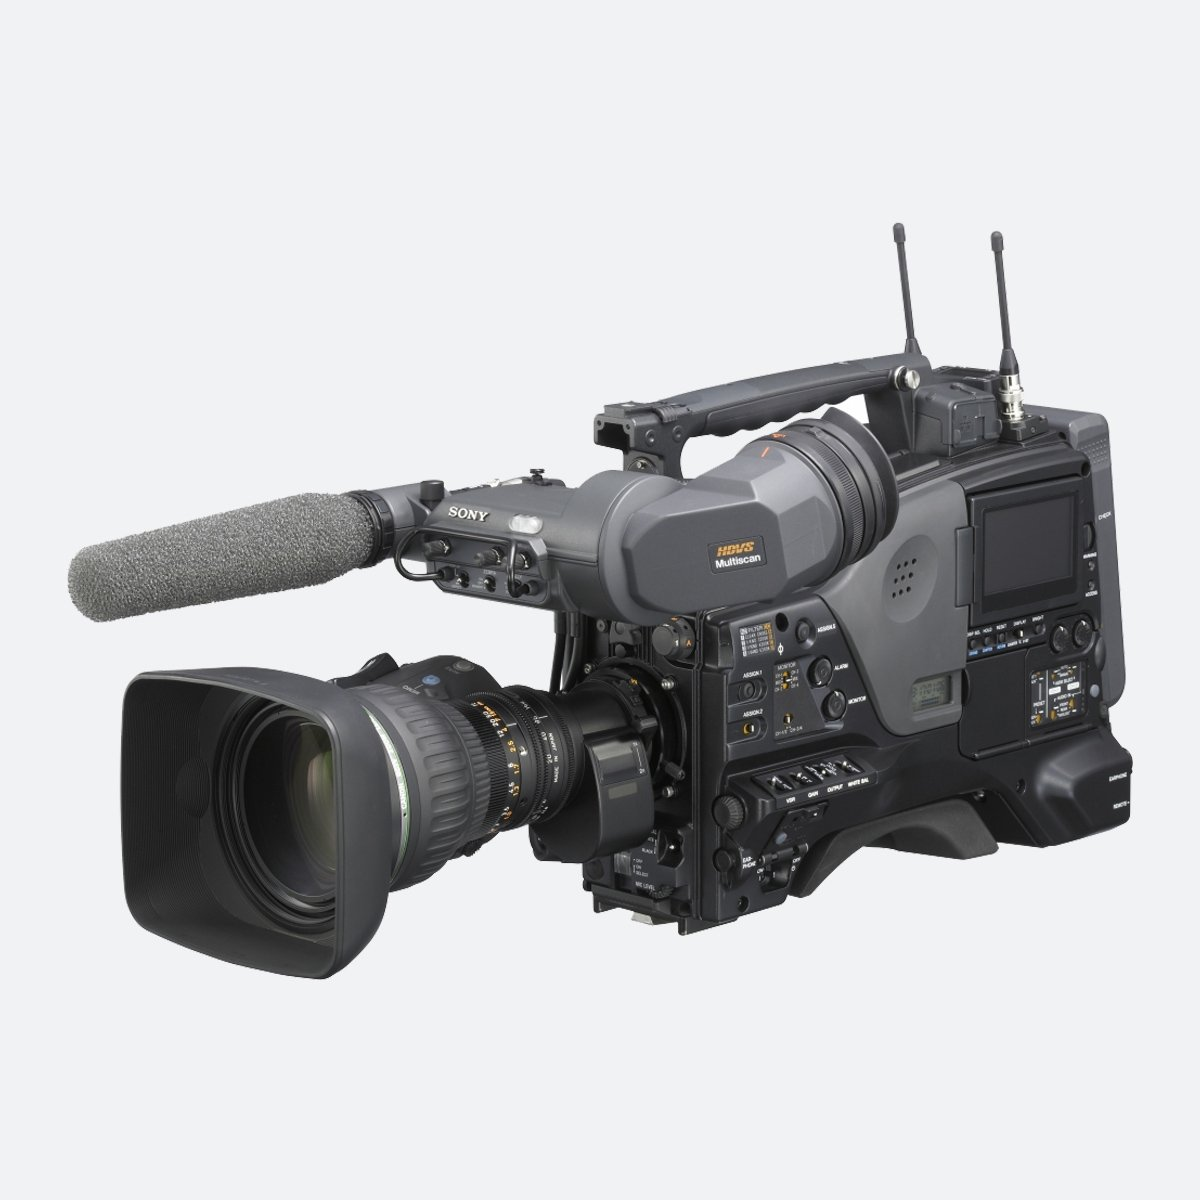 Used Sony PDW-F800 XDCAM HD422 camcorder